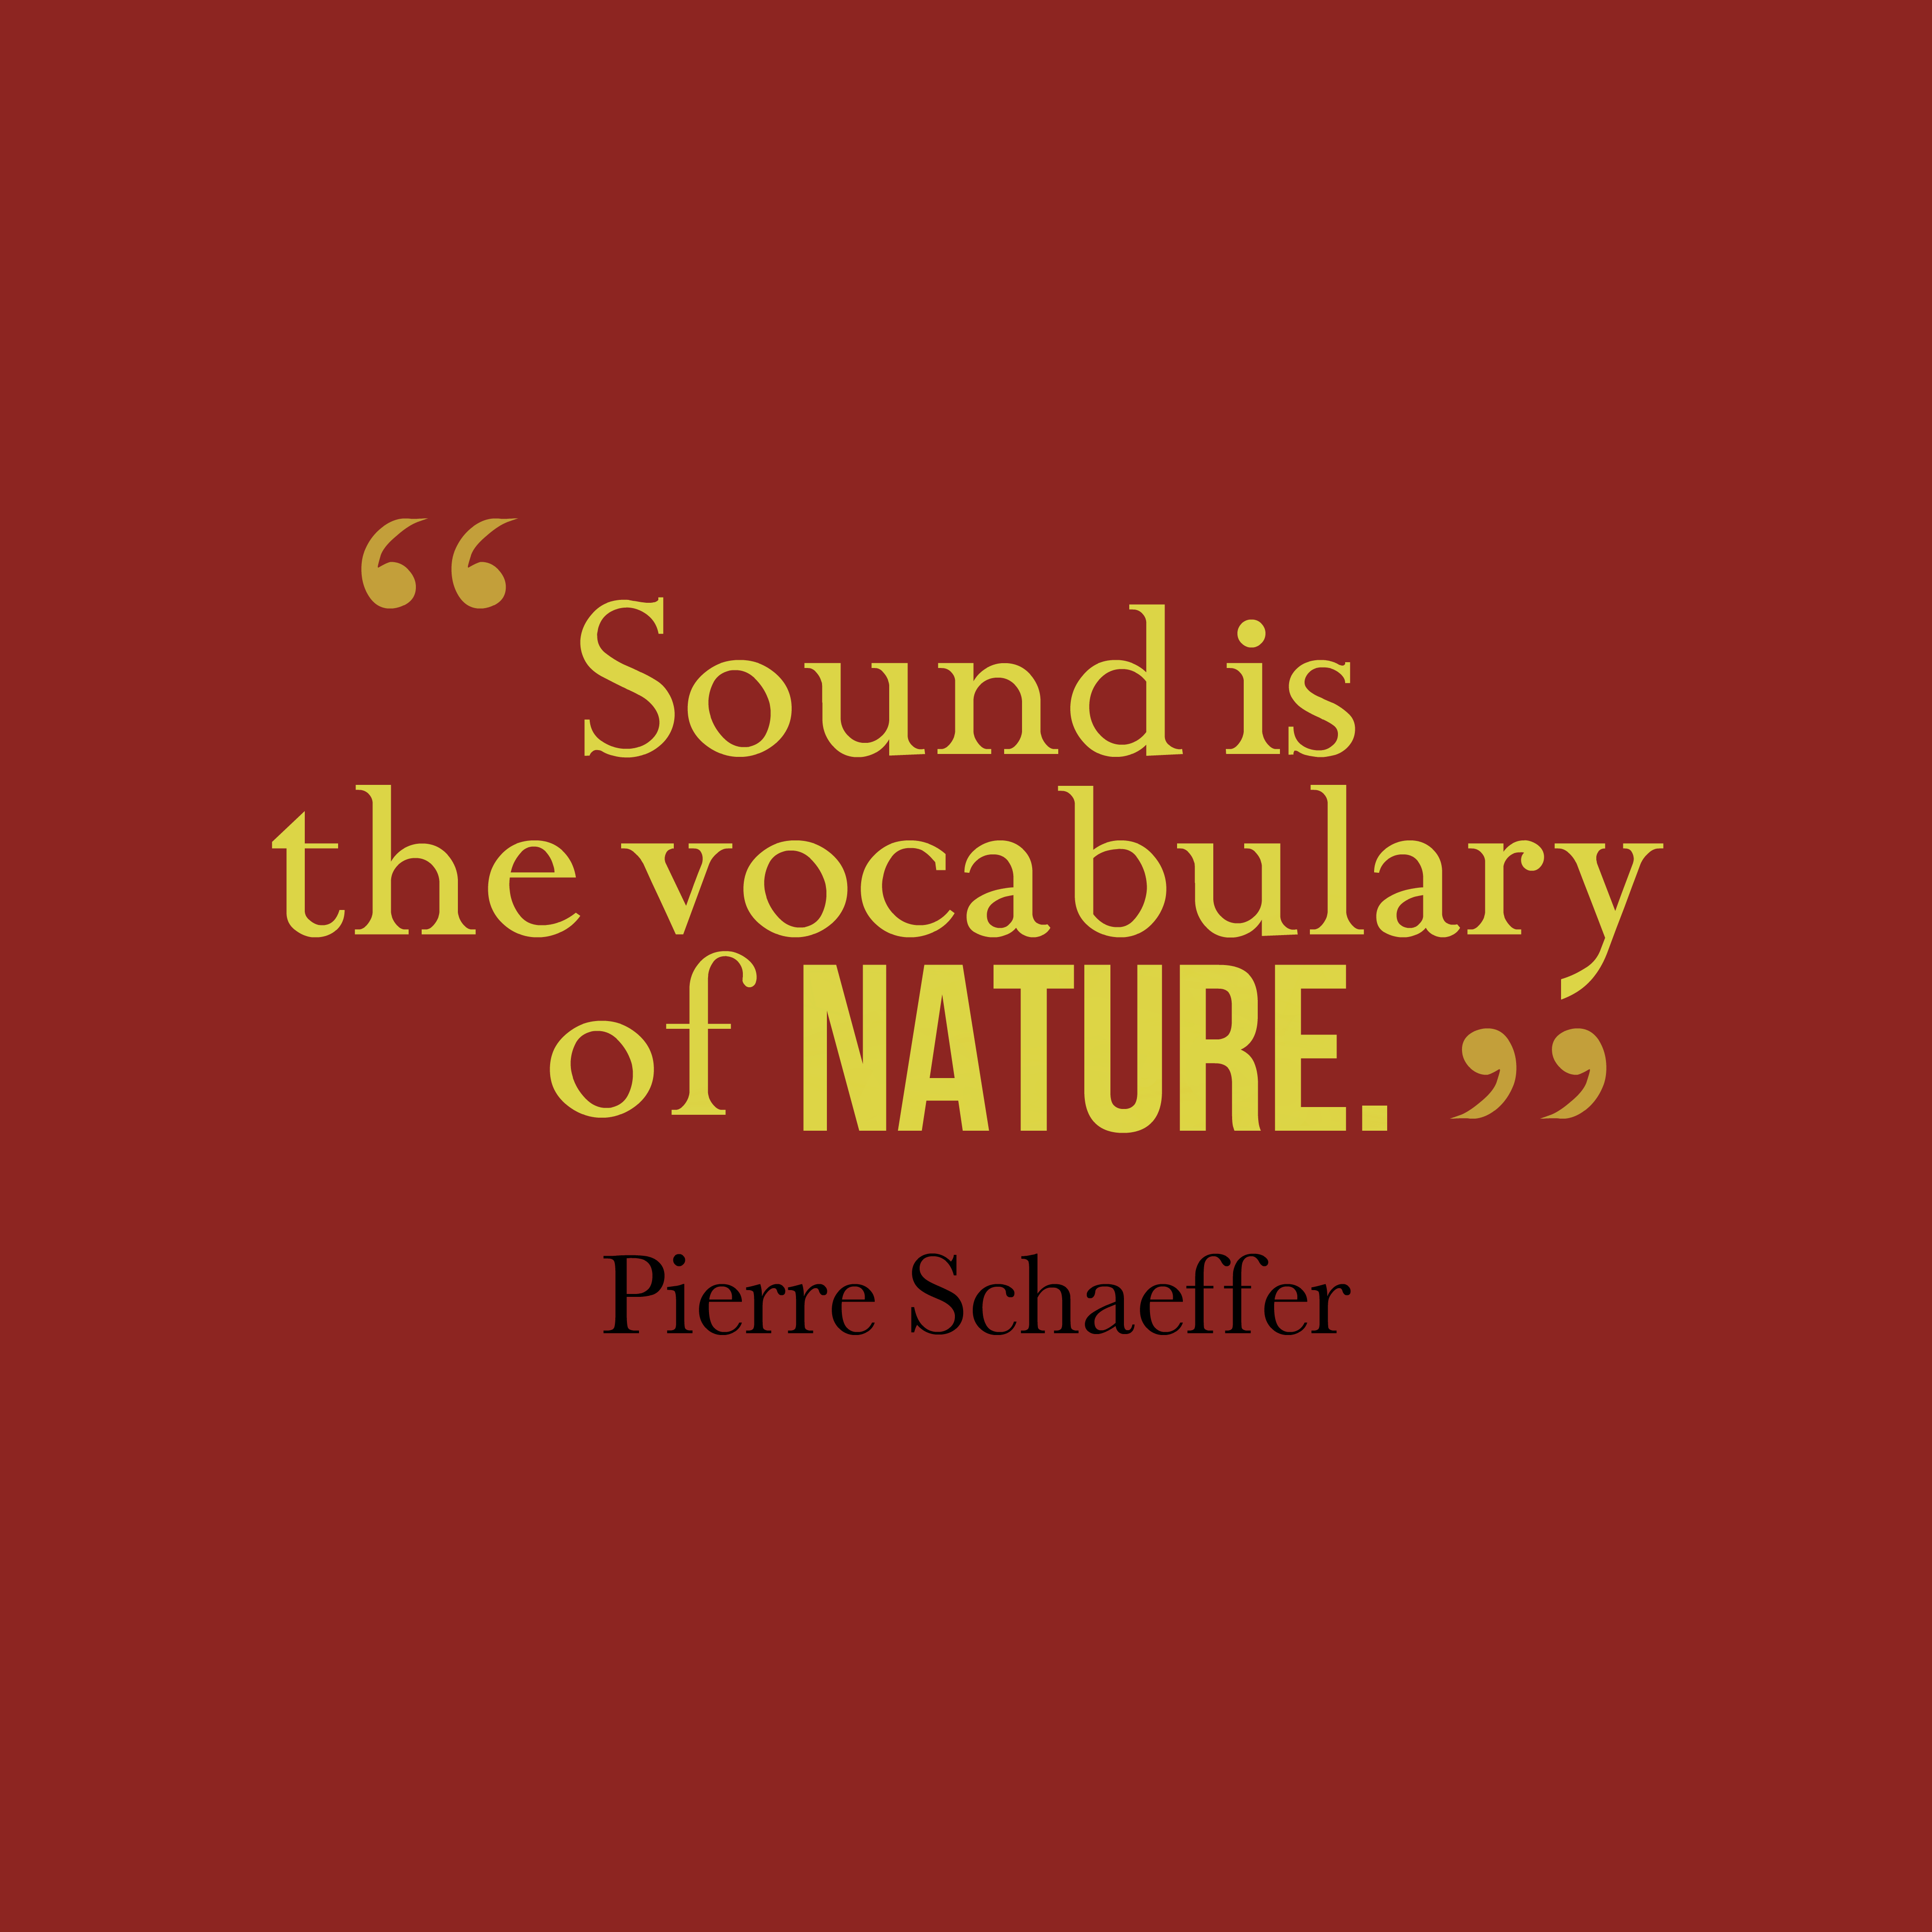 Quotes: 16 Best Pierre Schaeffer Quotes Images